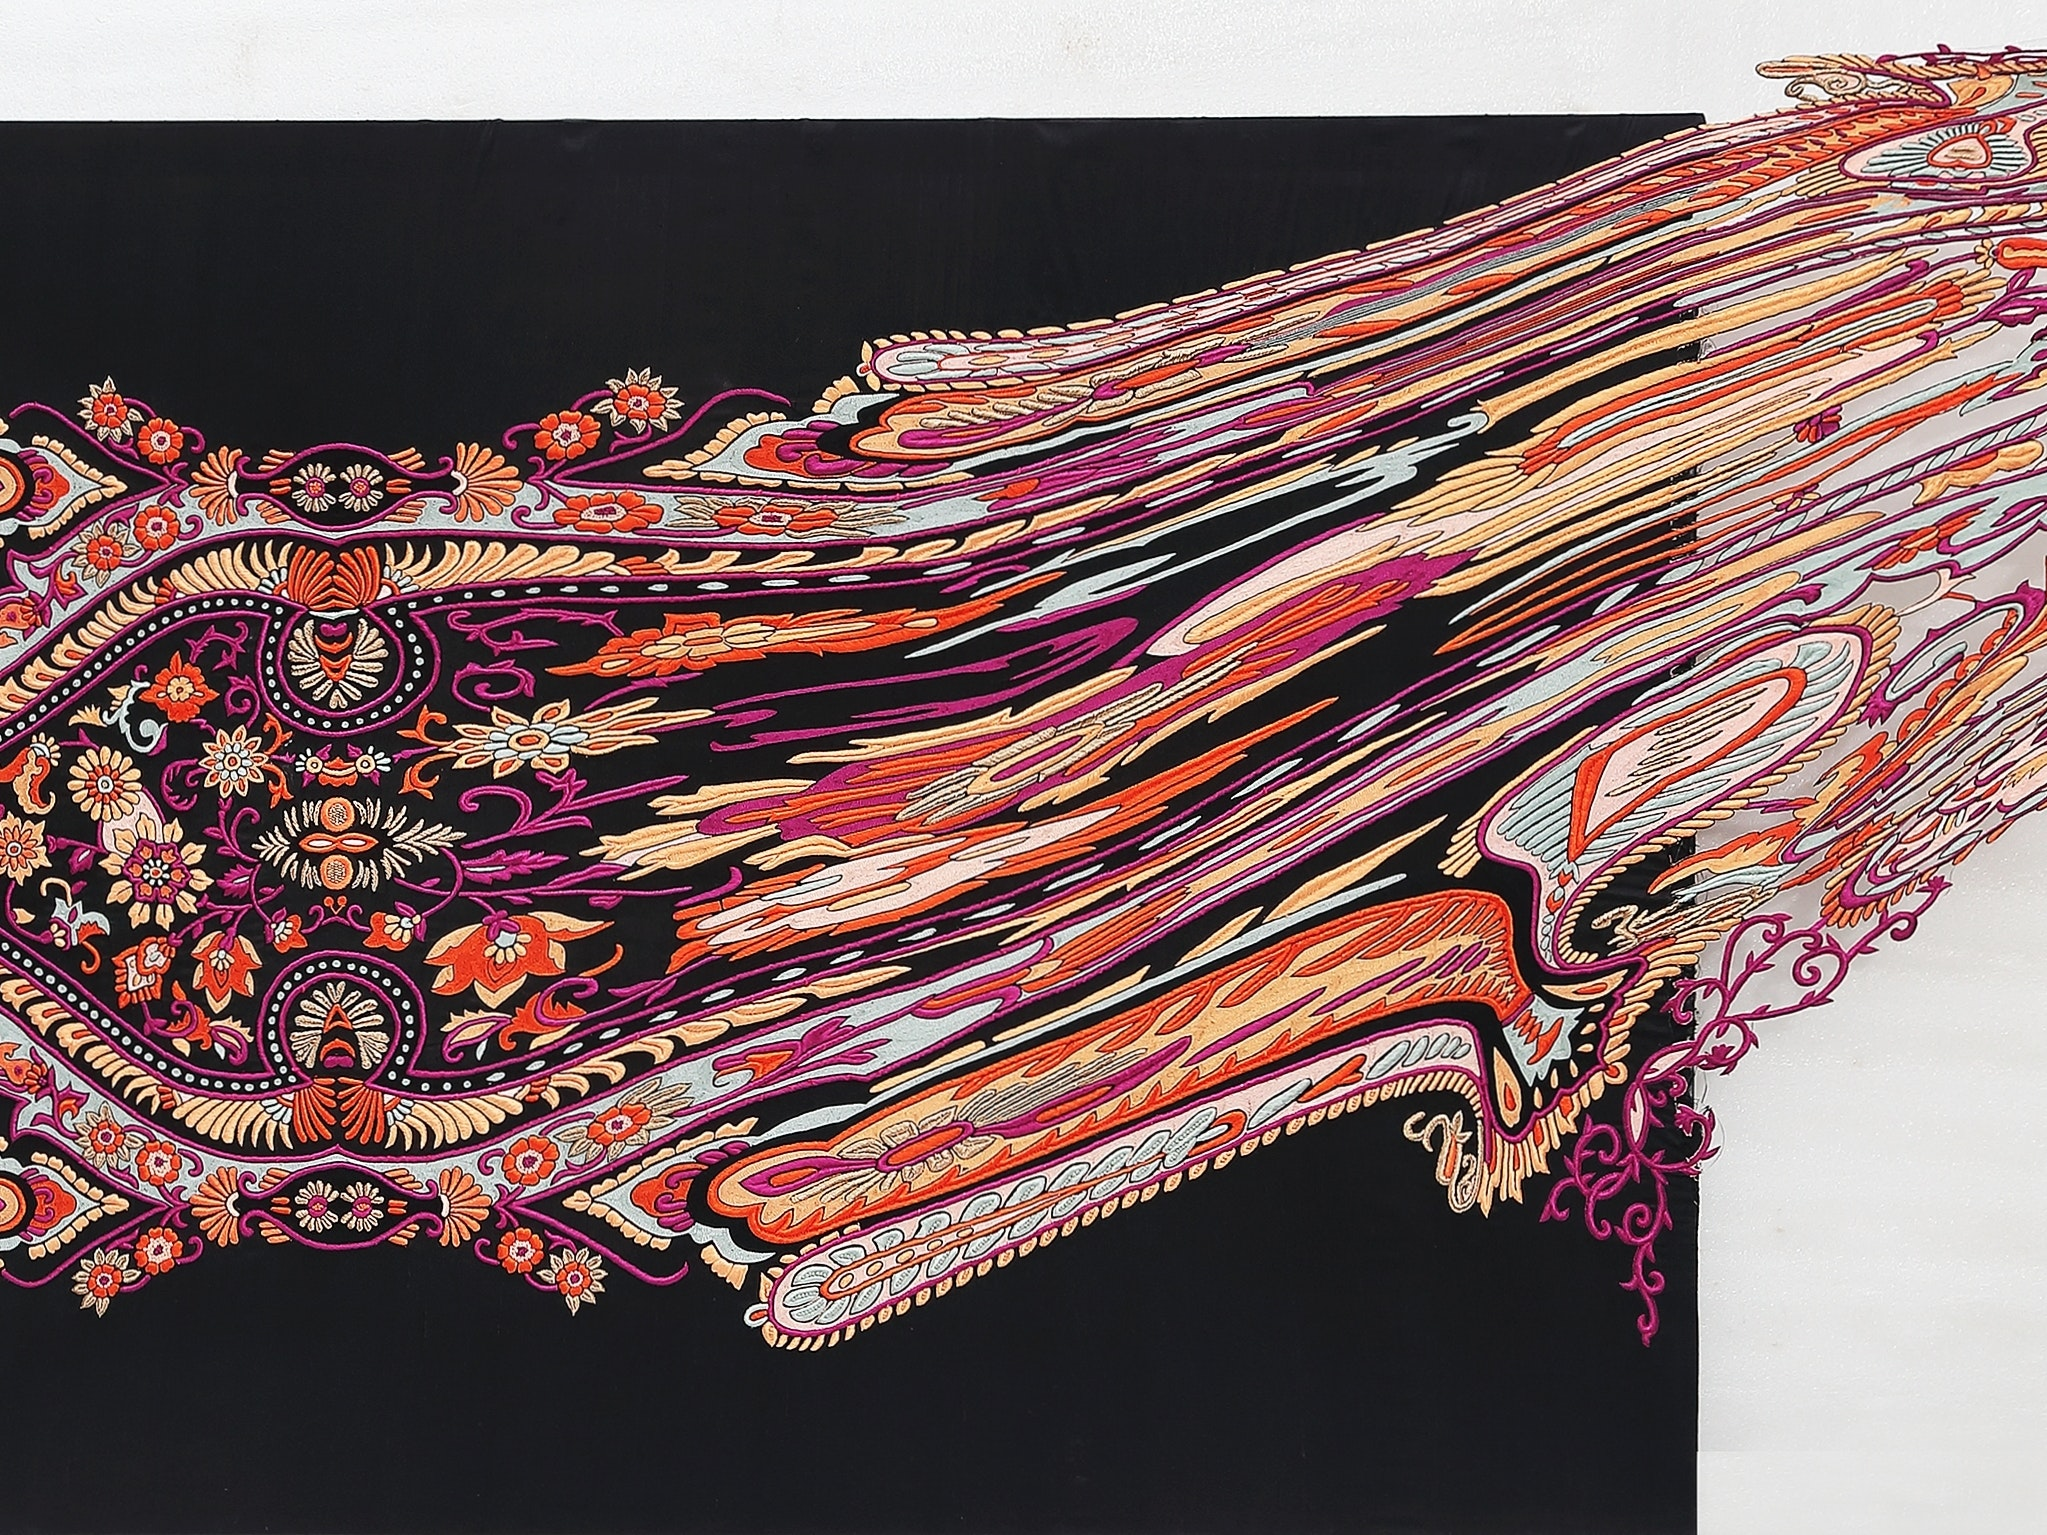 Faig Ahmed's Distorted, Pixelated Rugs Are Textile Acid Trips